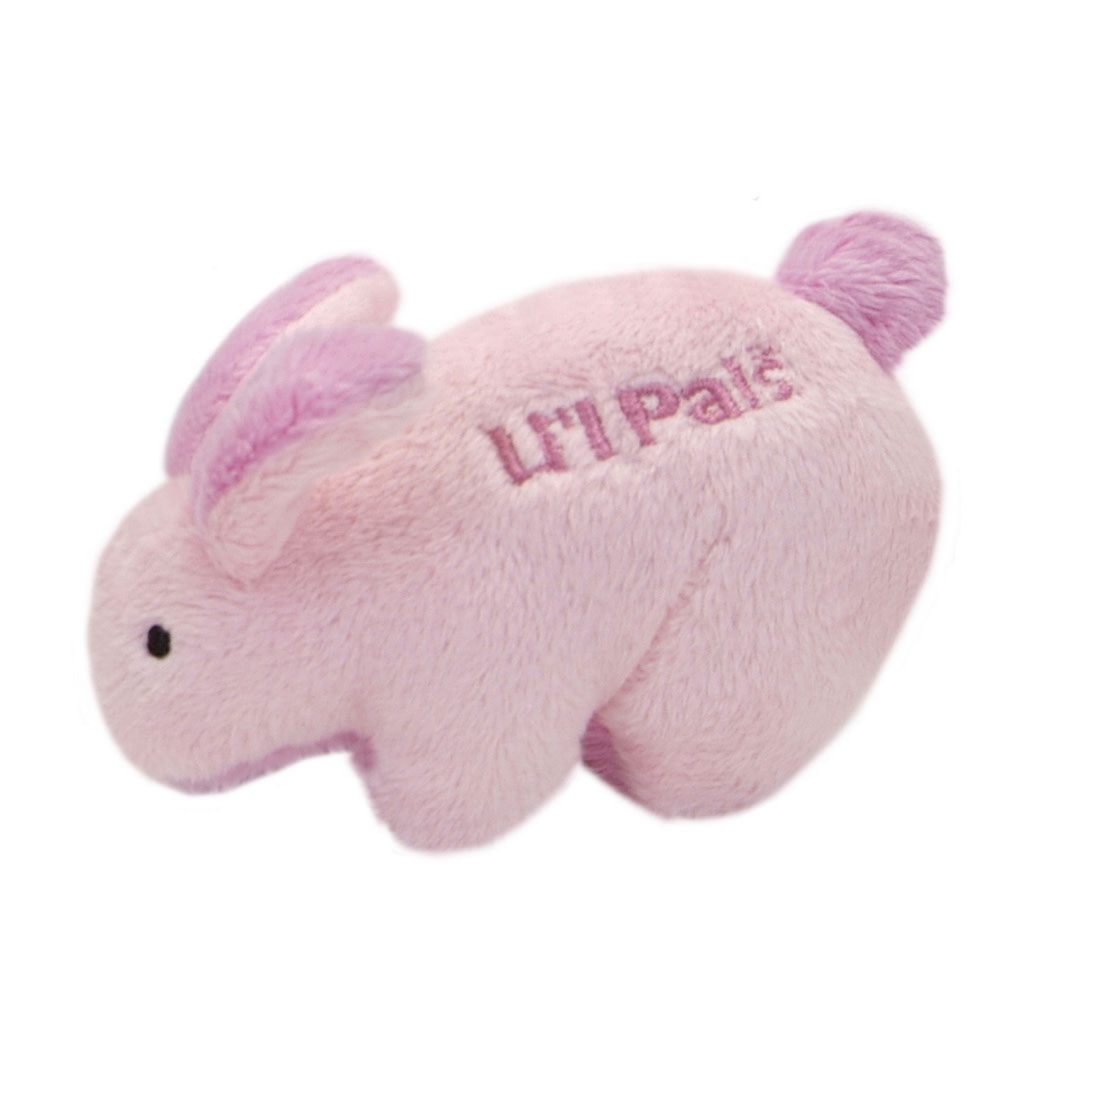 Li'l Pals Rabbit Plush Dog Toy, 4.5-in